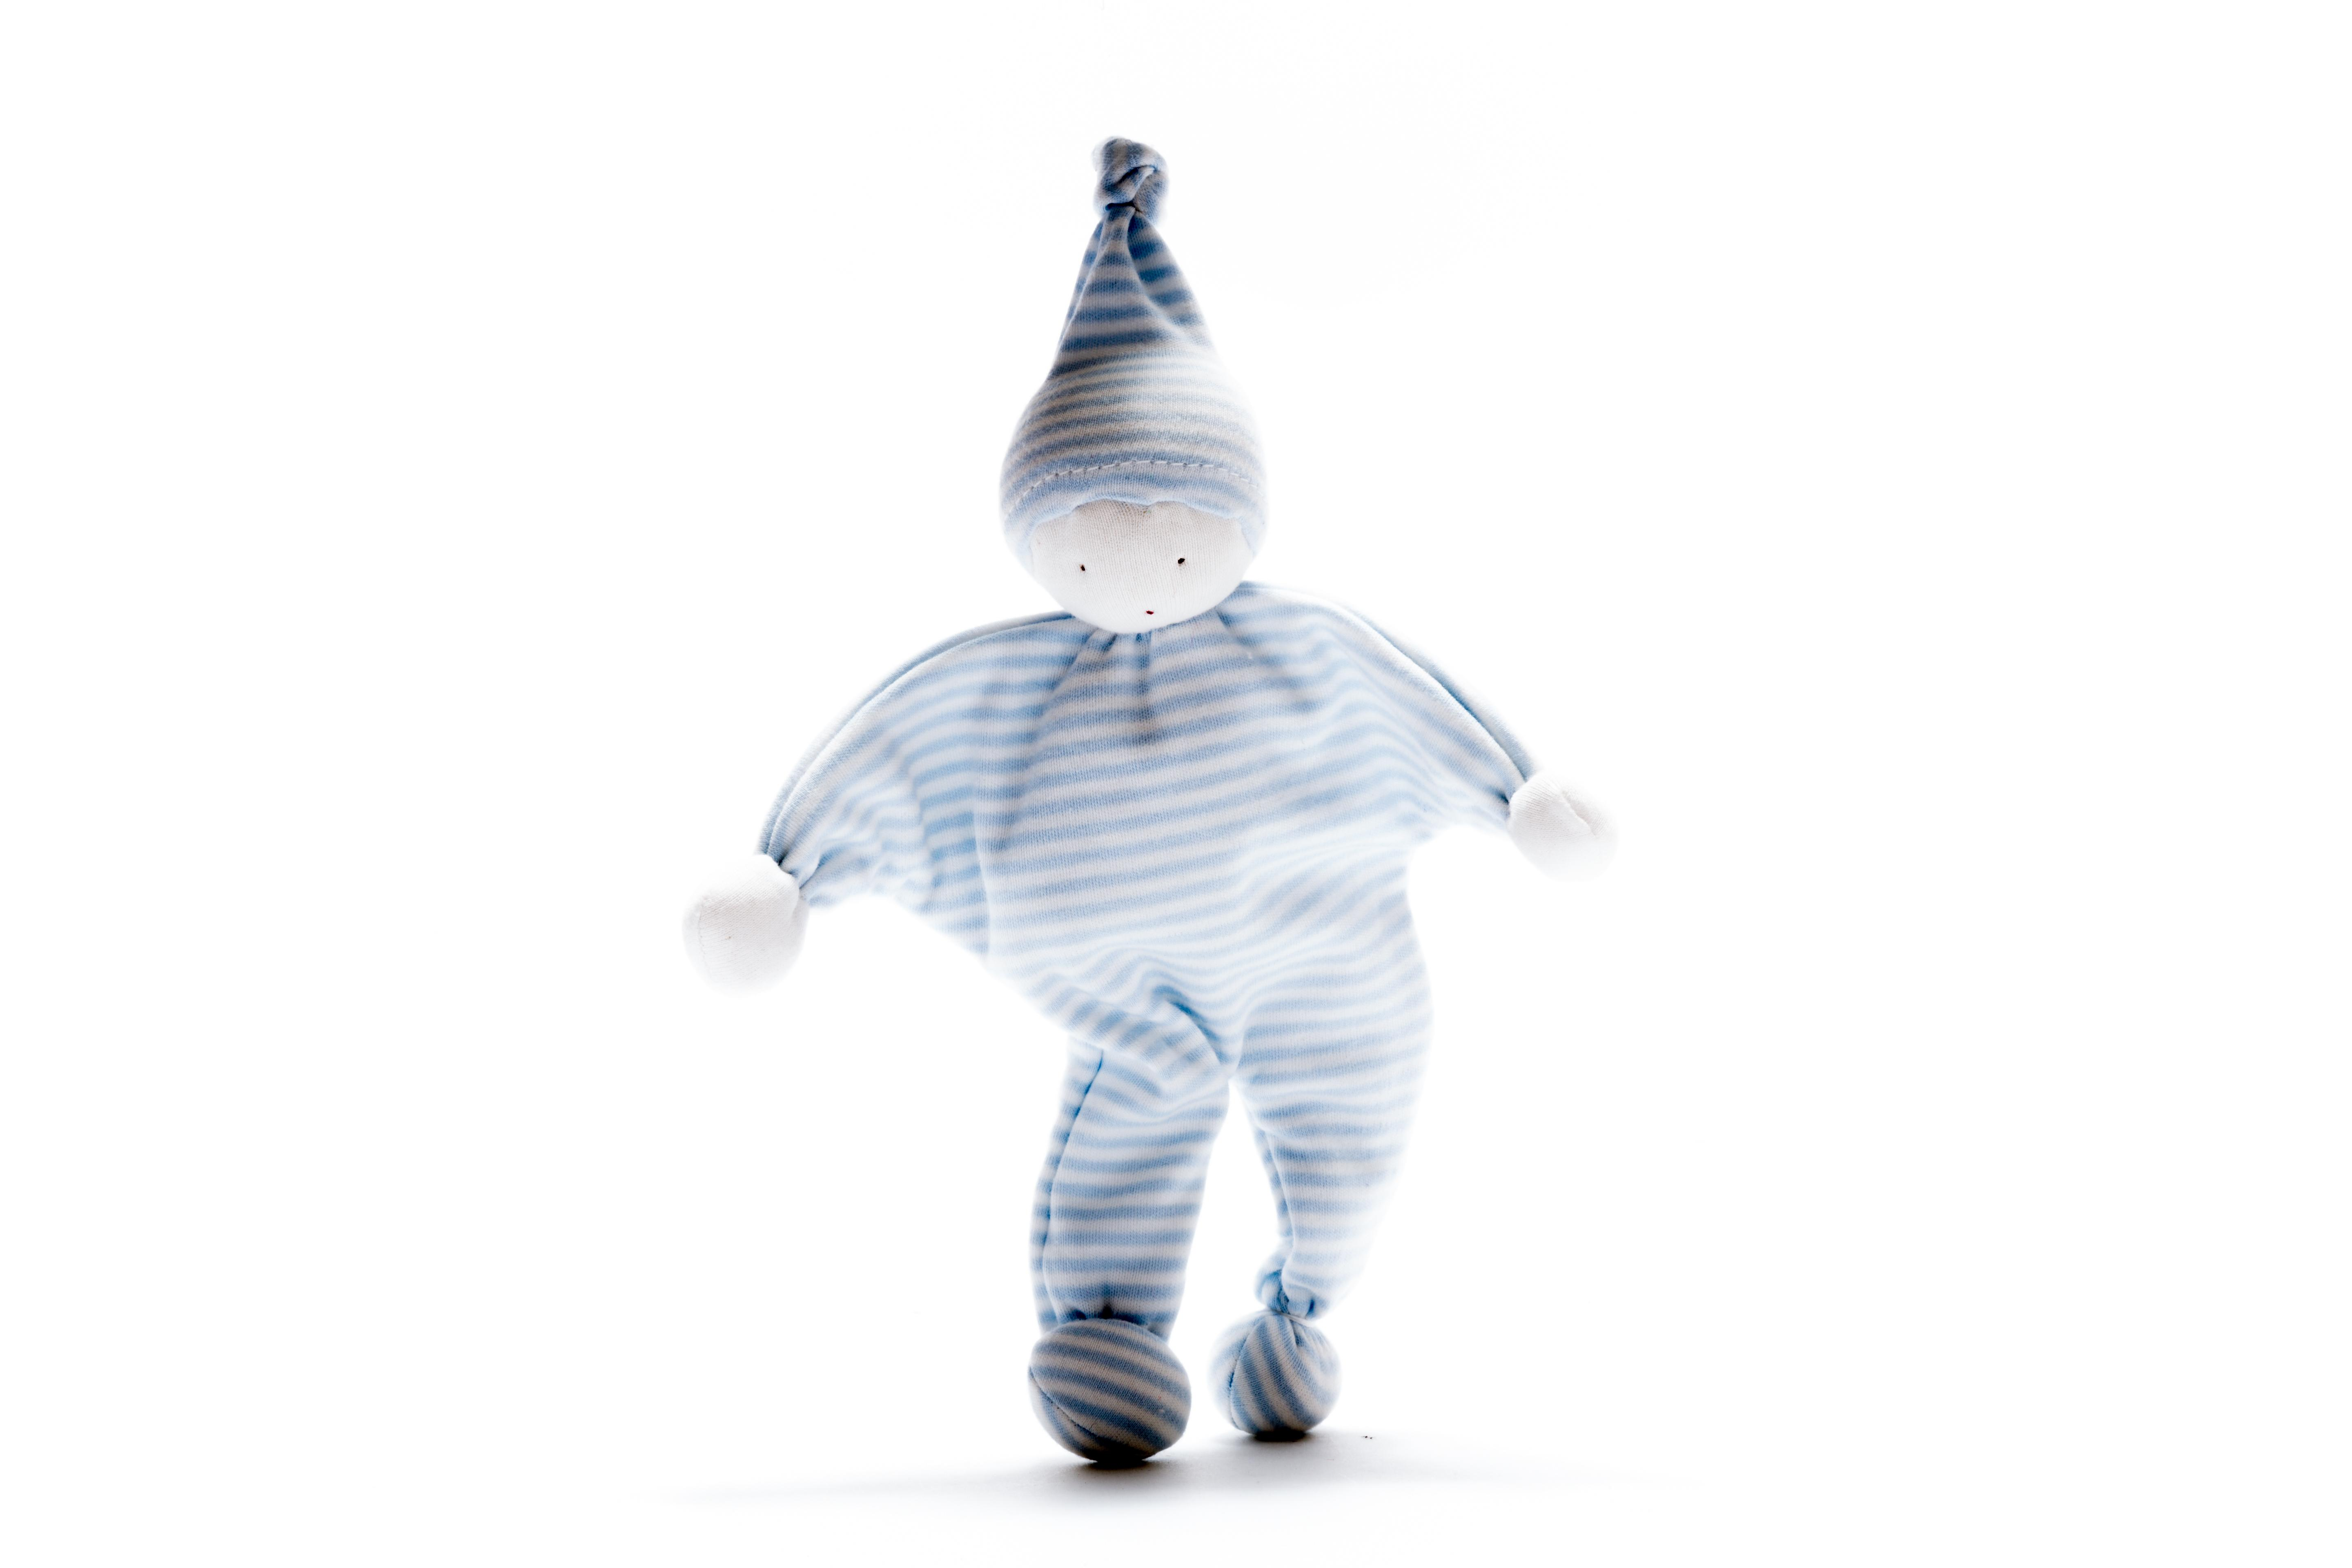 Cotton baby comforter made from upcycled material with pale blue and white stripes and matching pointy hat